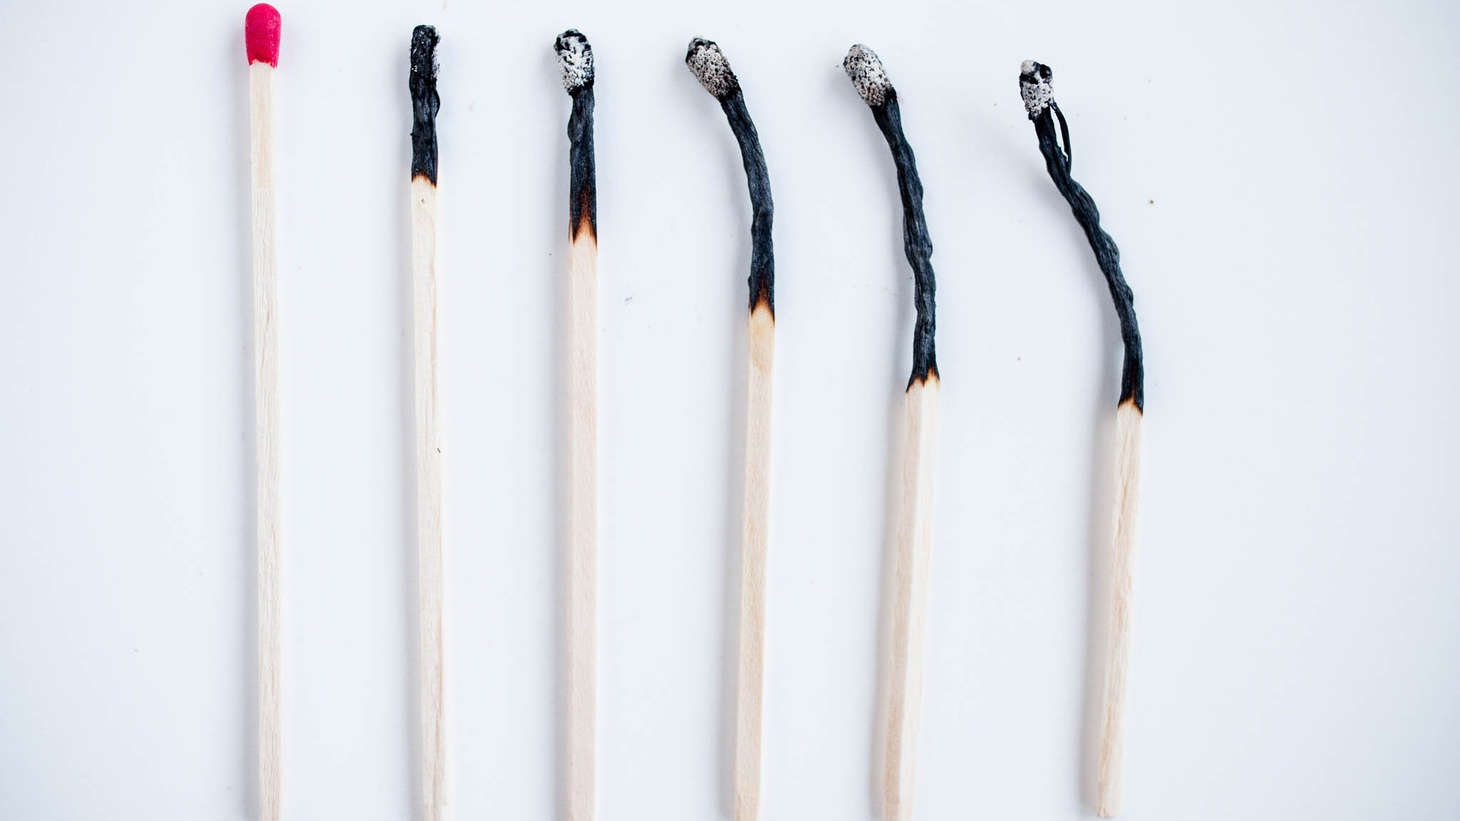 Fire matches and burned matches.